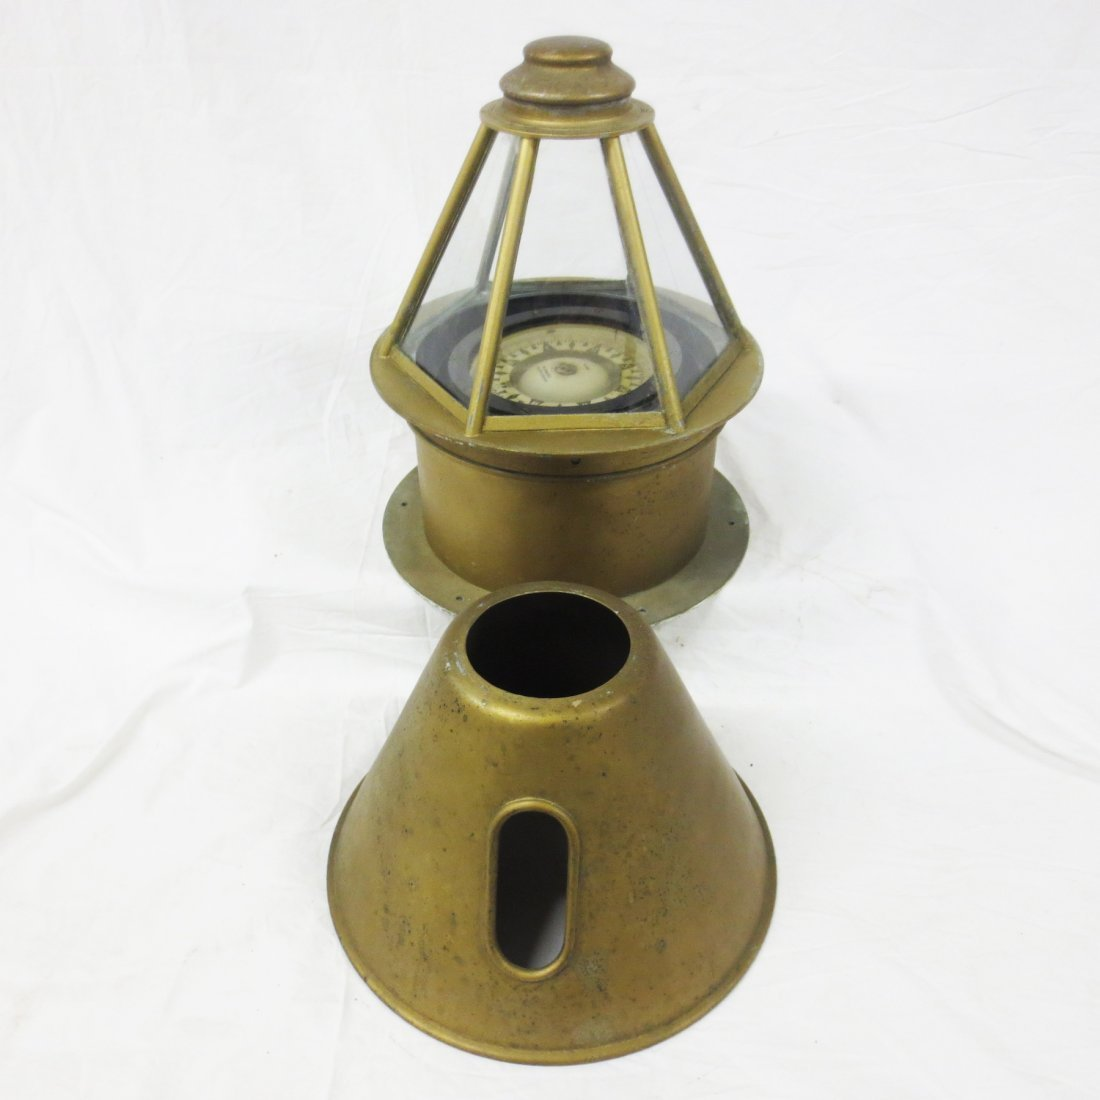 19th Century Skylight Yacht Binnacle with Hood